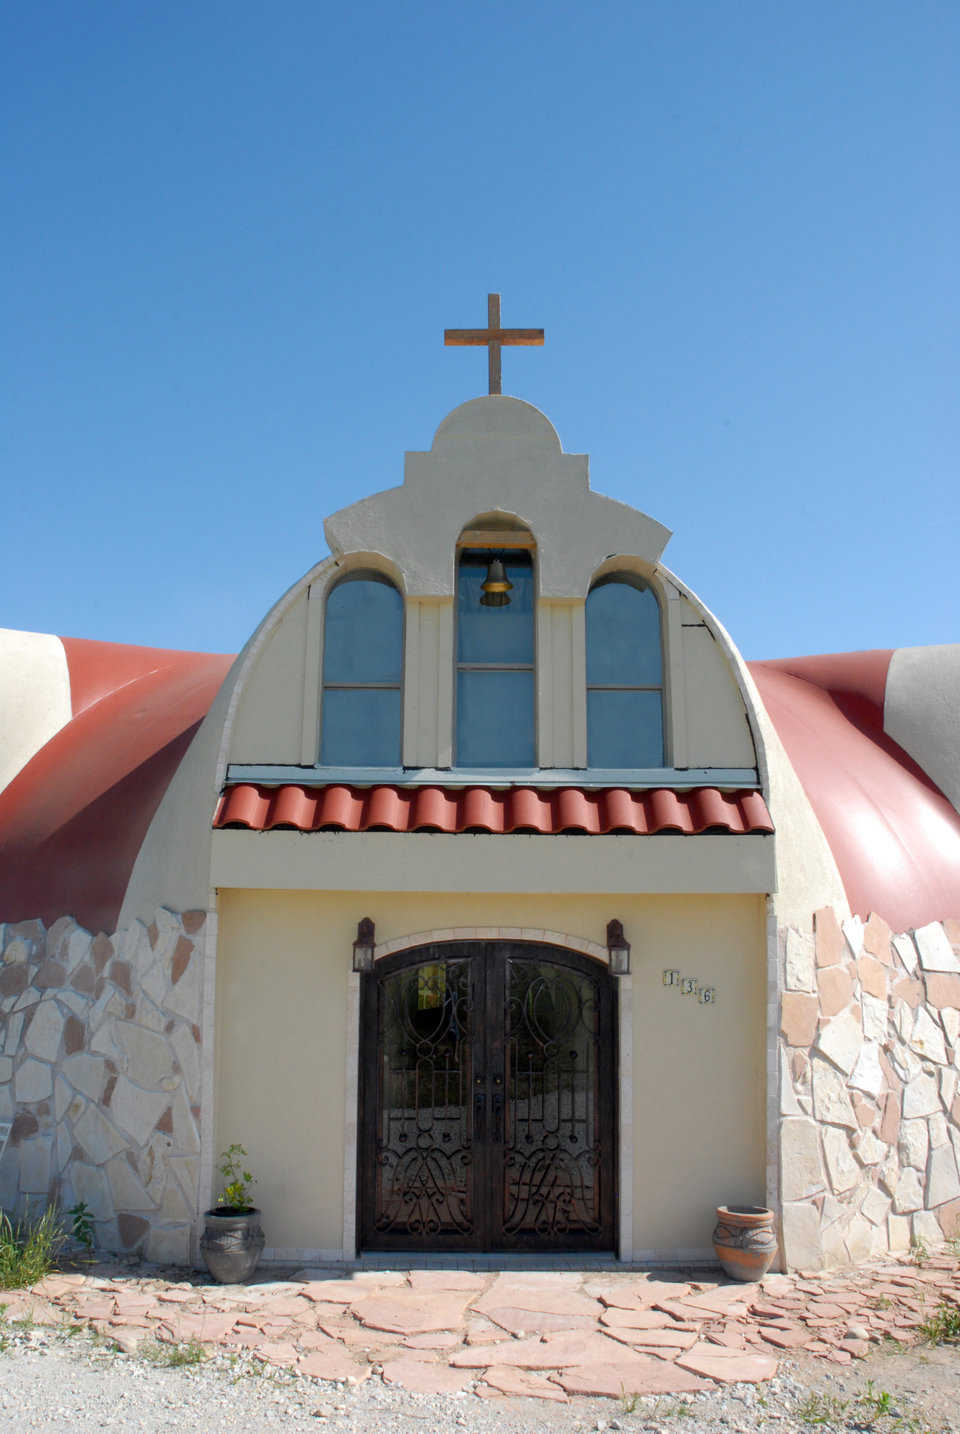 Here is a view of the front entrance from the outside. It truly does resemble a Spanish church.